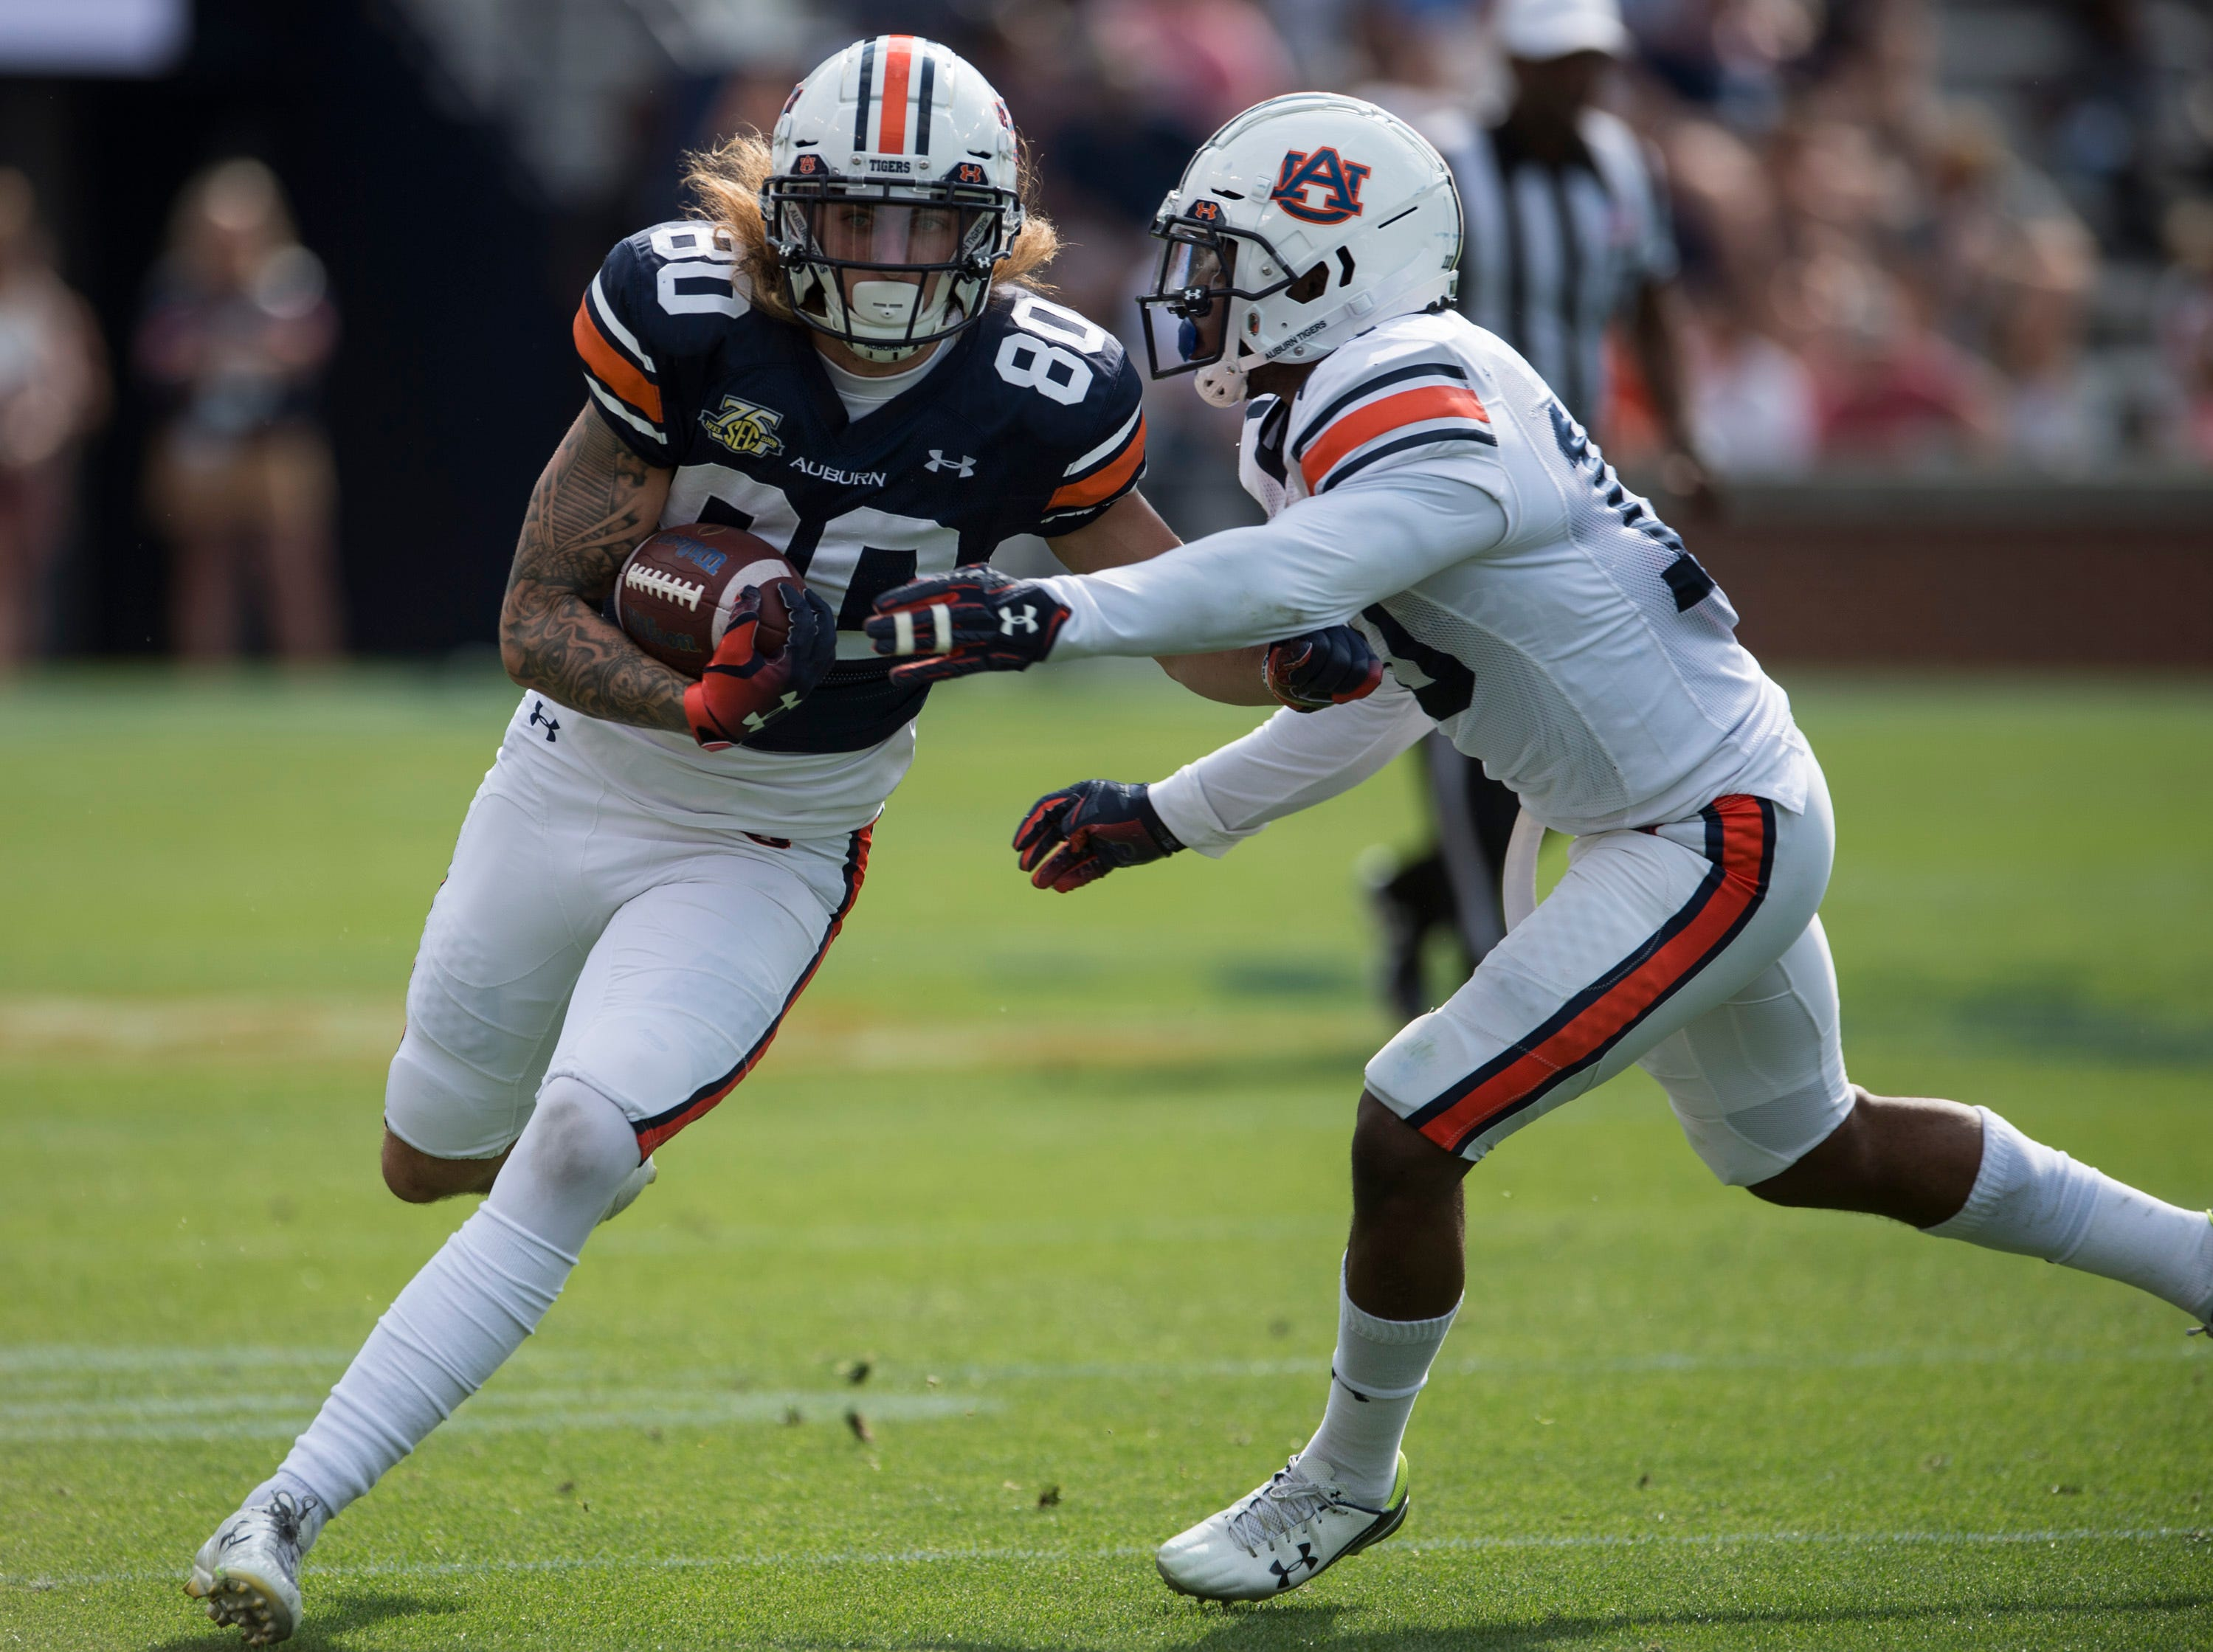 Auburn tight end Sal Cannella (80) runs the ball after a catch during the A-Day spring practice gameat Jordan-Hare Stadium in Auburn, Ala., on Saturday, April 13, 2019.